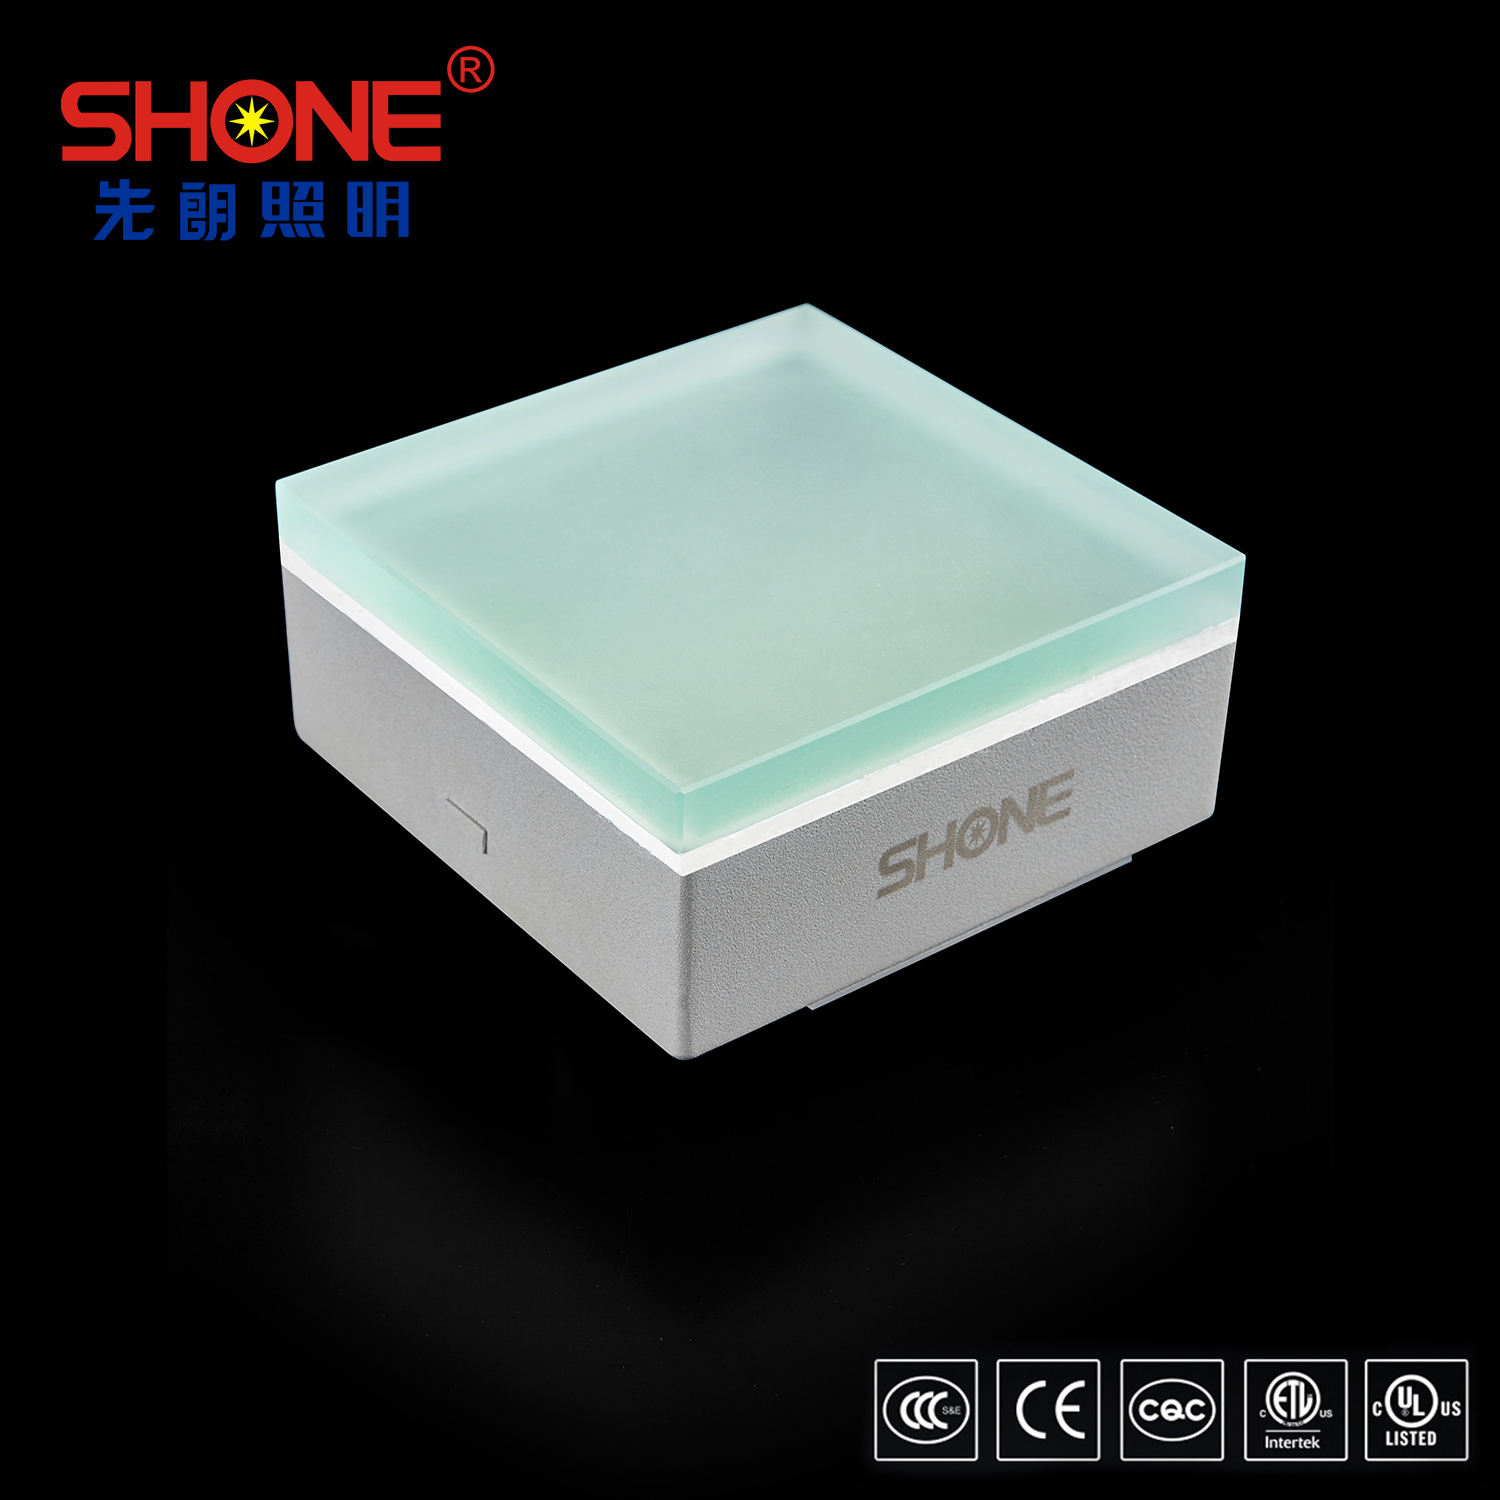 Shone Lighting 100x100 LED Brick LED Tile Light with CE UL ETL Certificates for Outdoor Lighting